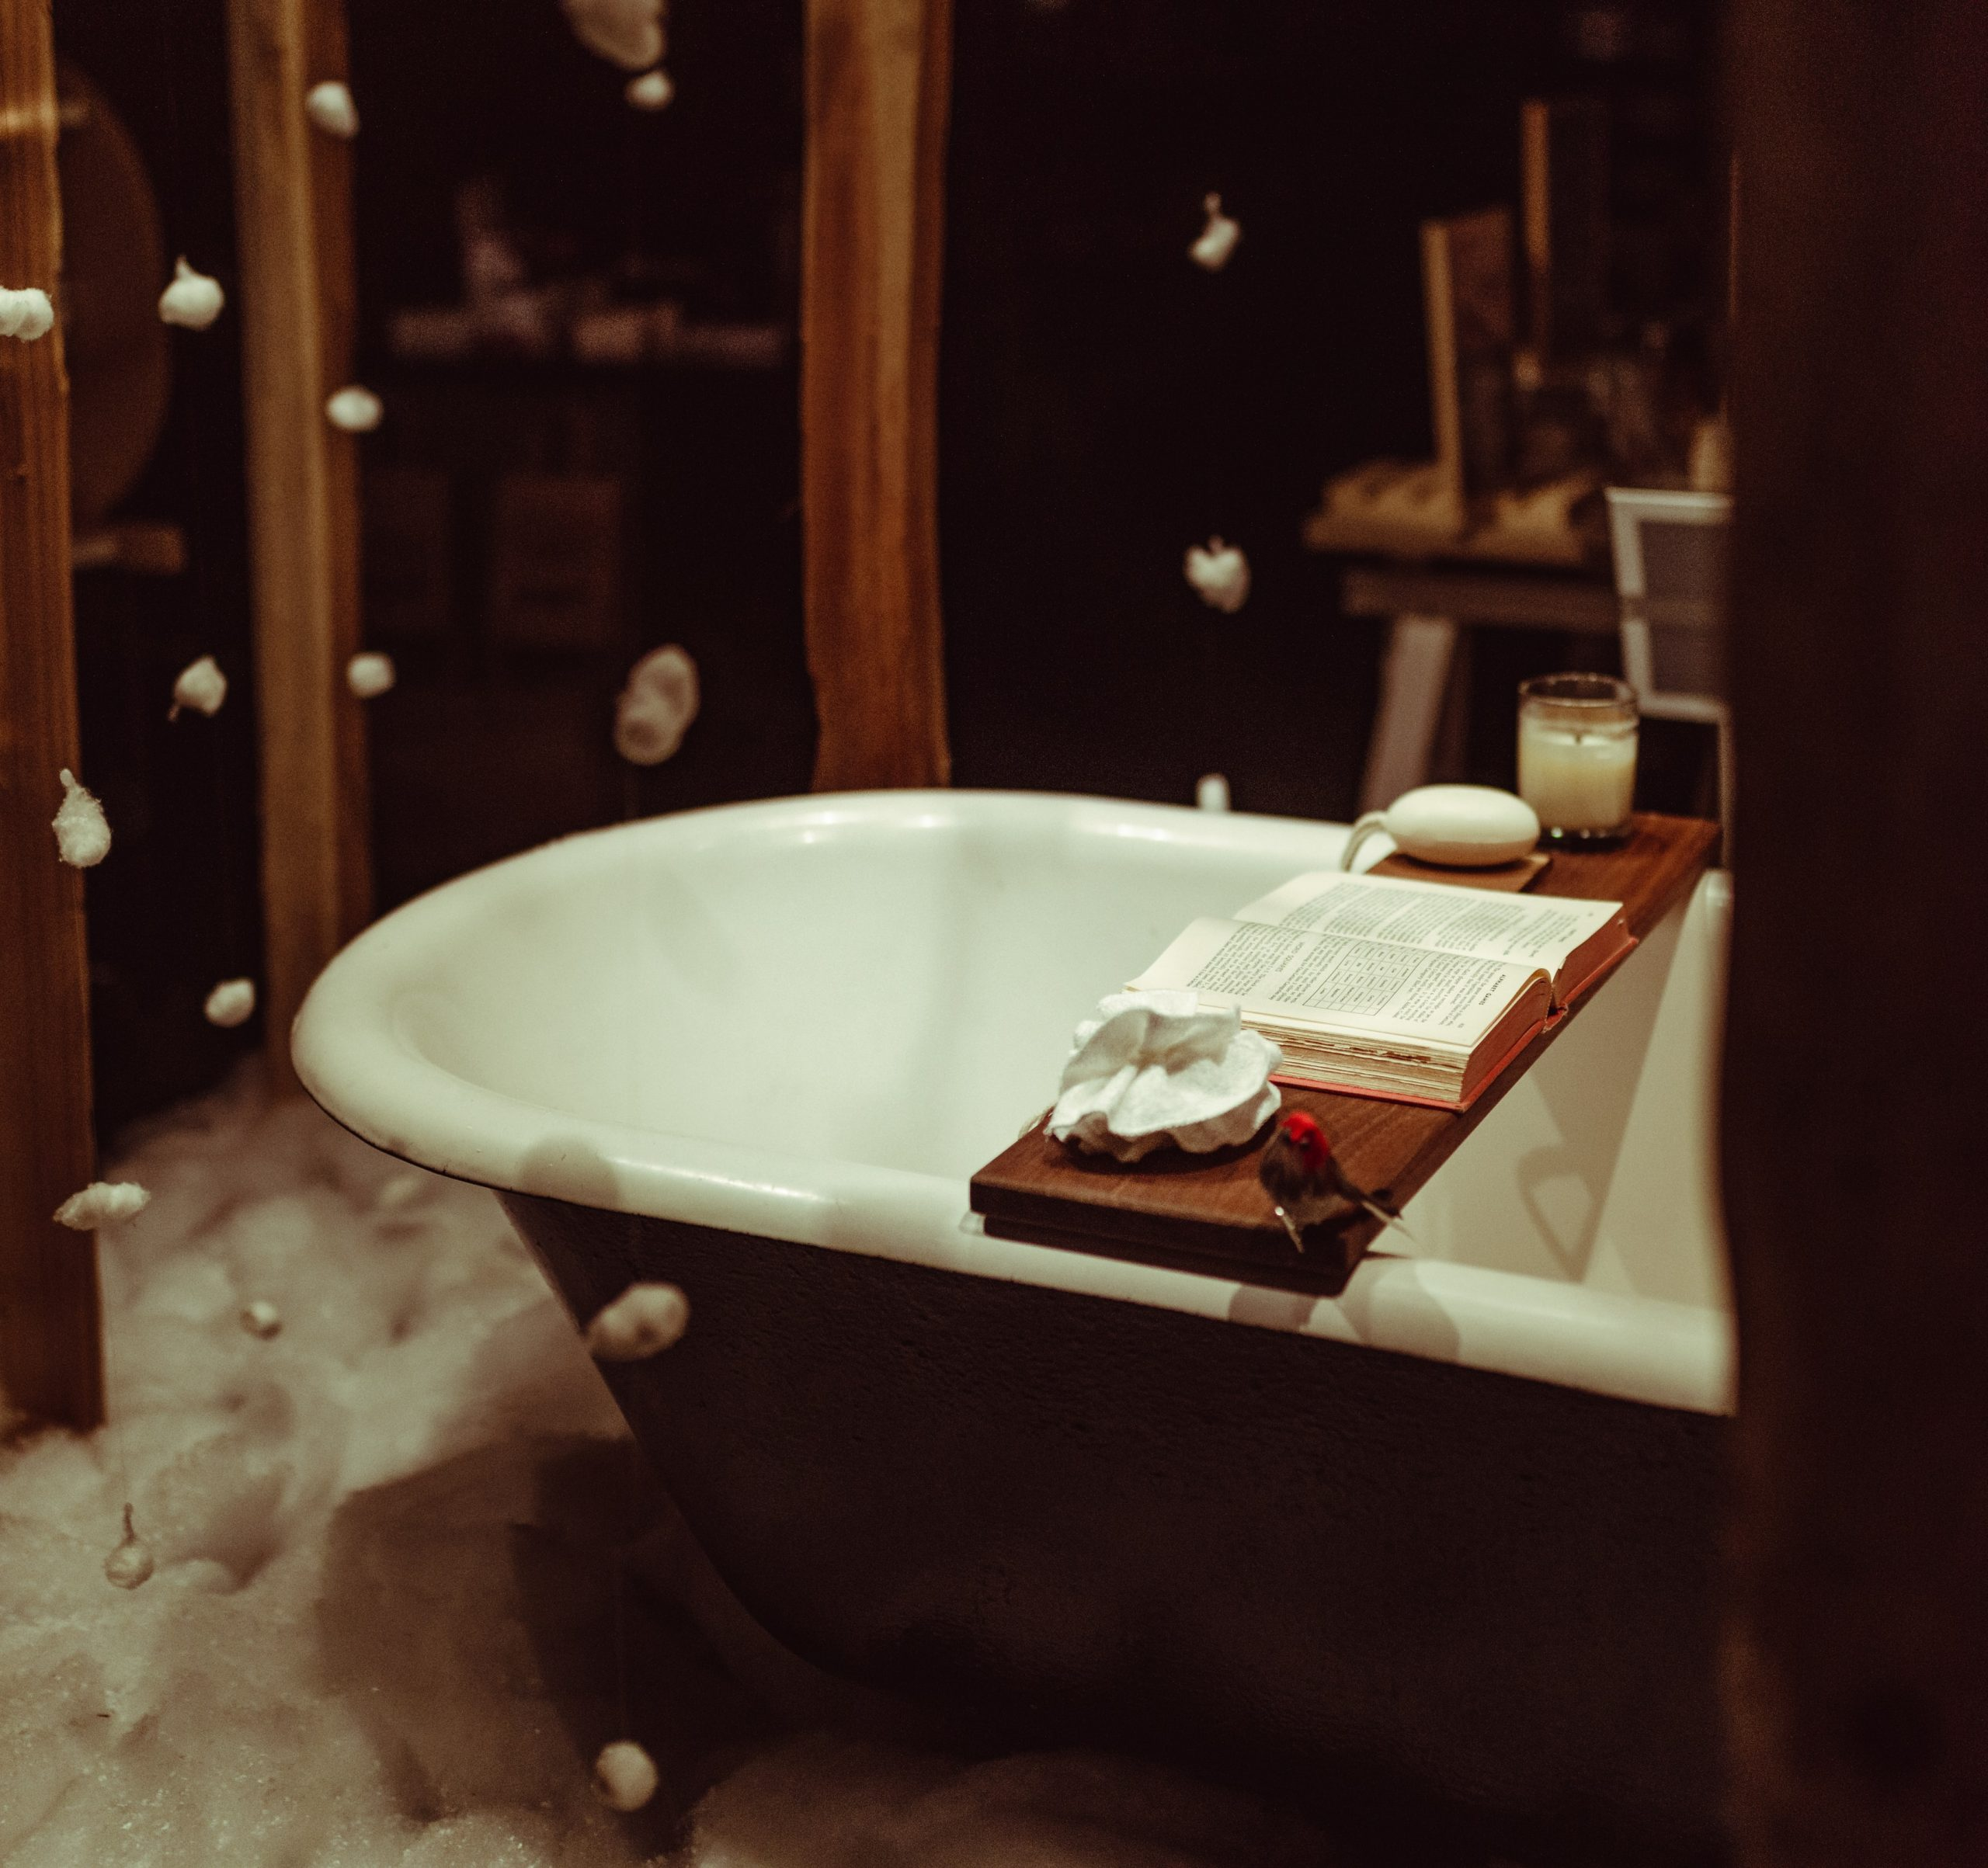 Cure for the COVID blues: A relaxing bath tub set up with a book